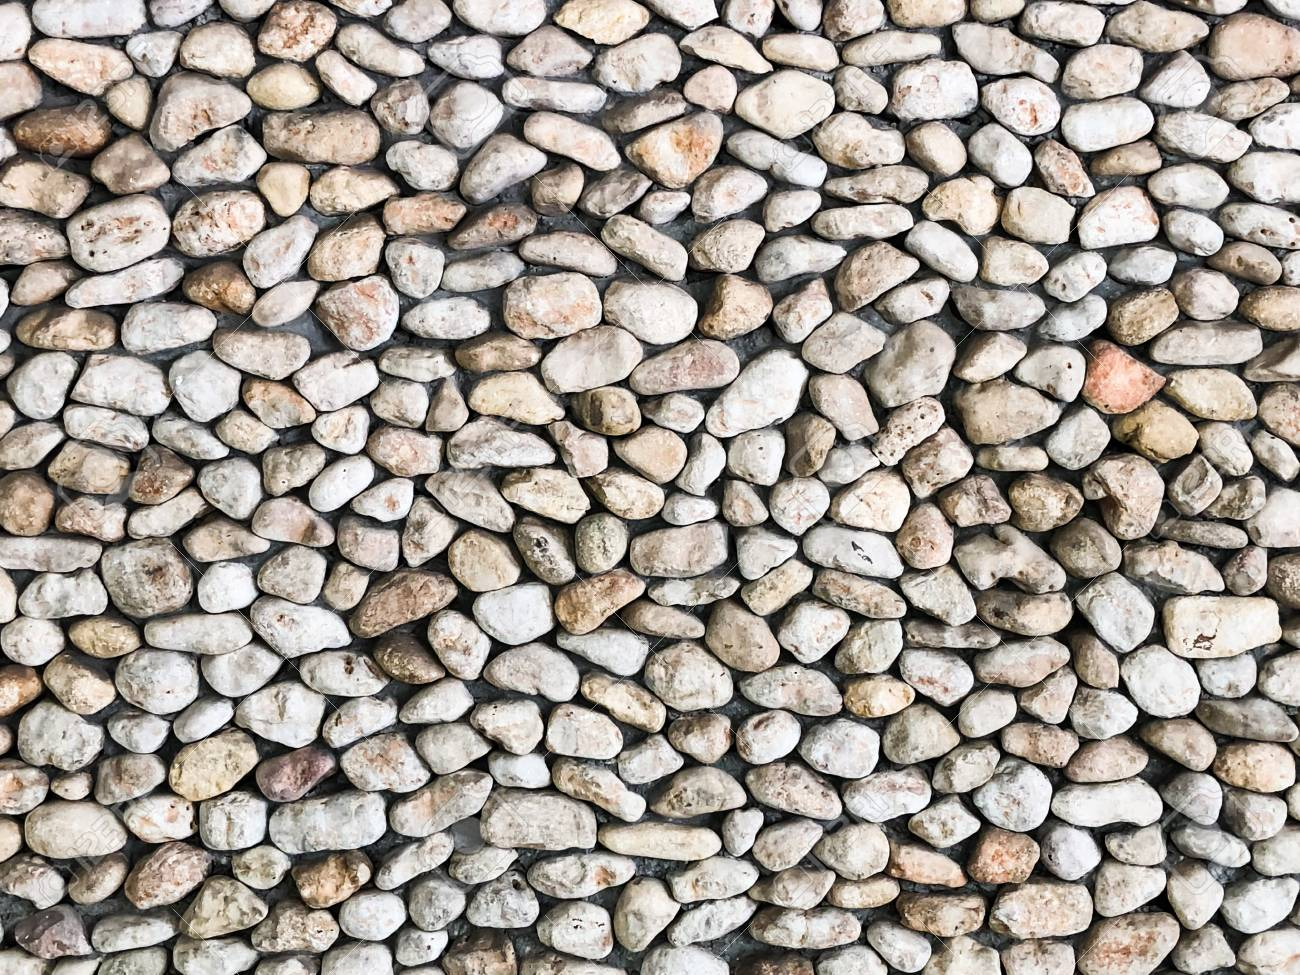 Stone pebbles for interior exterior decoration design business.